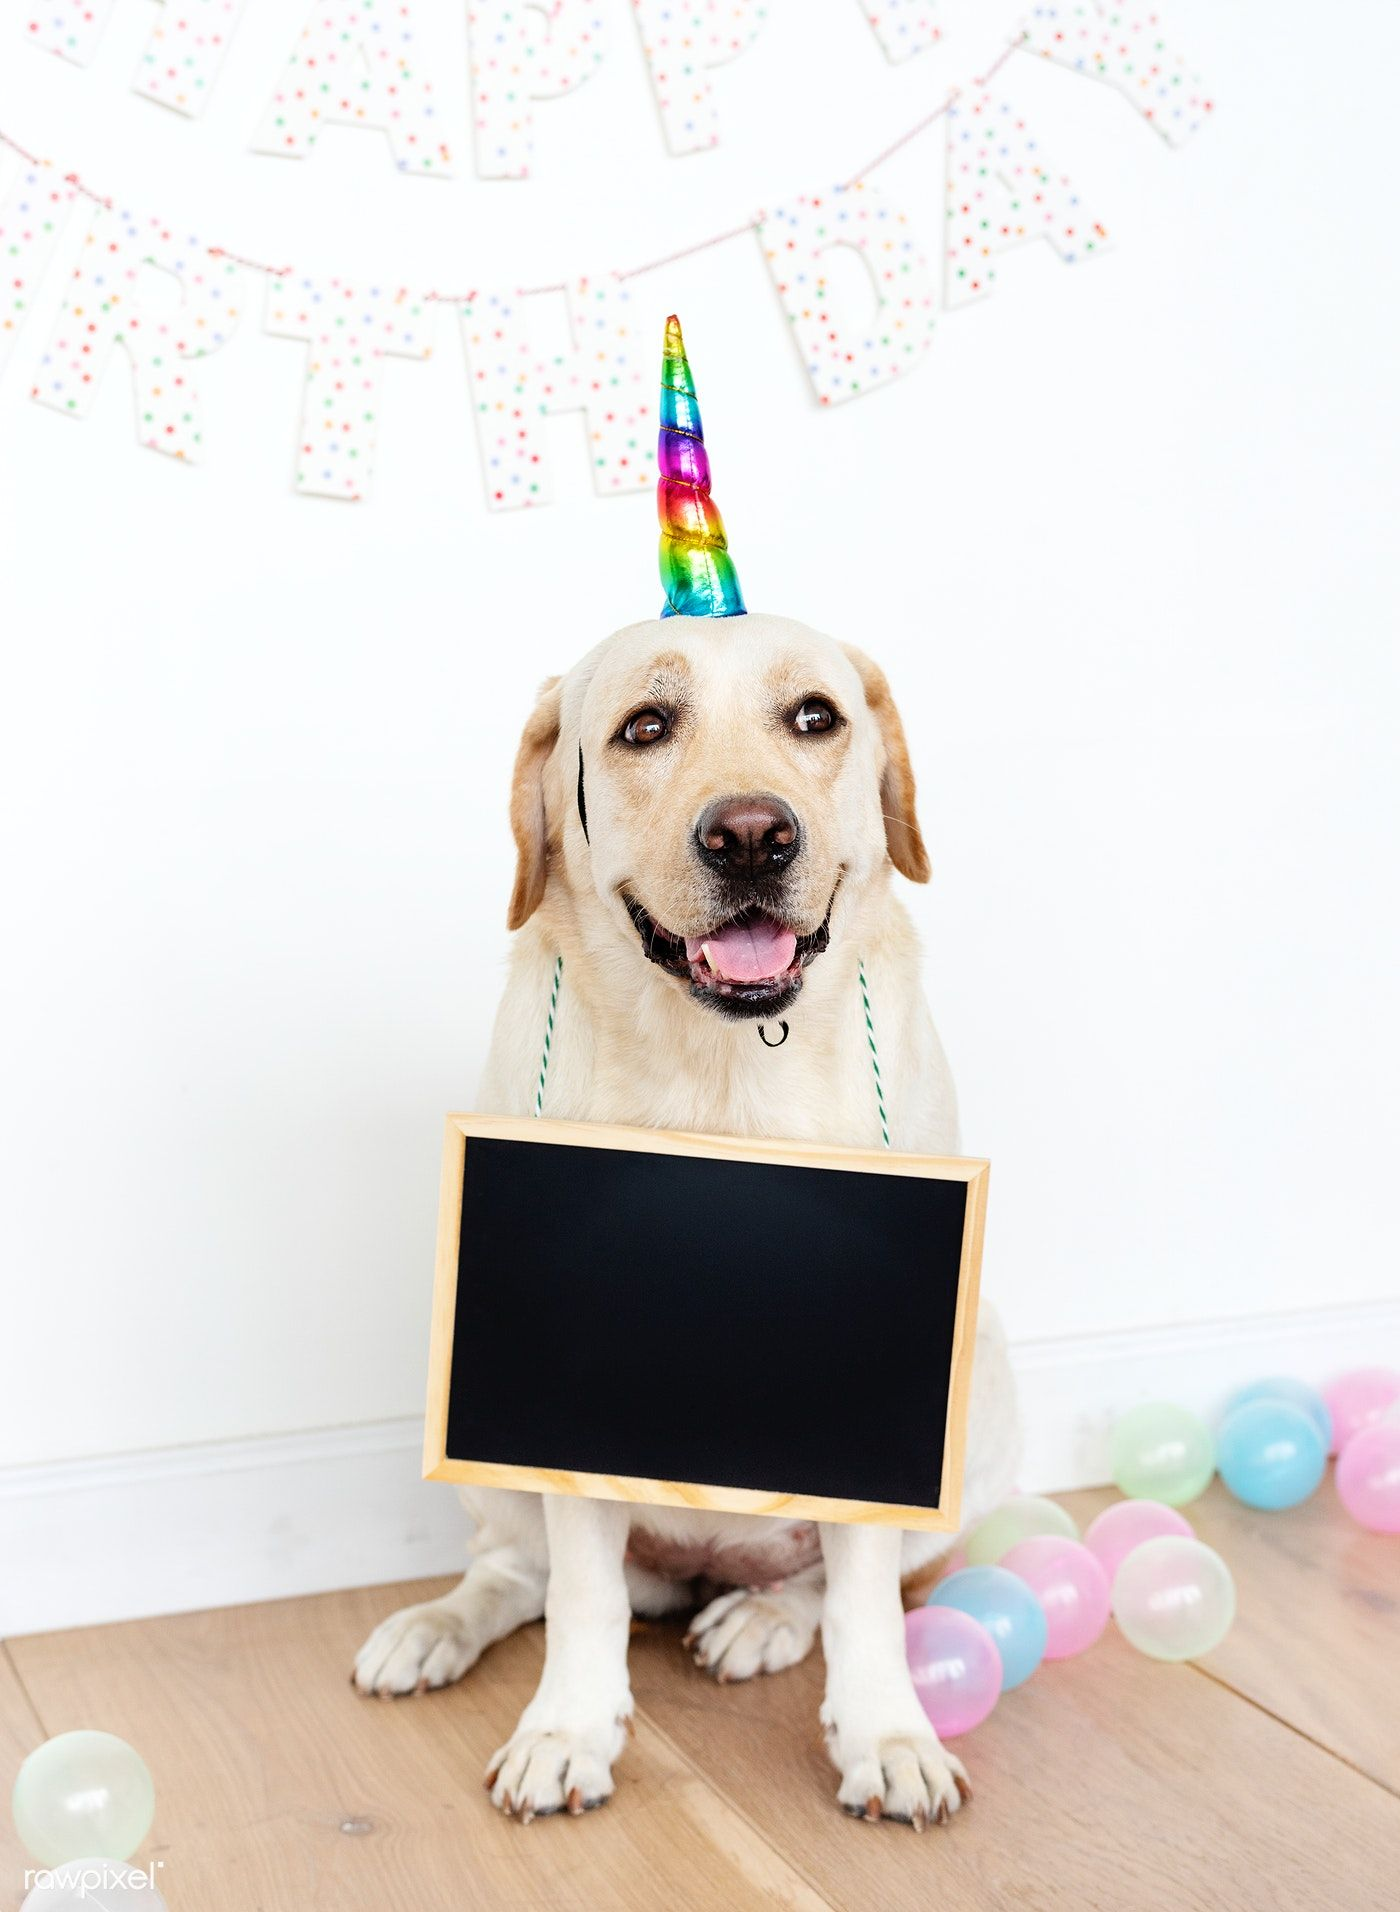 Cute Labrador Retriever With A Unicorn Hat Free Image By